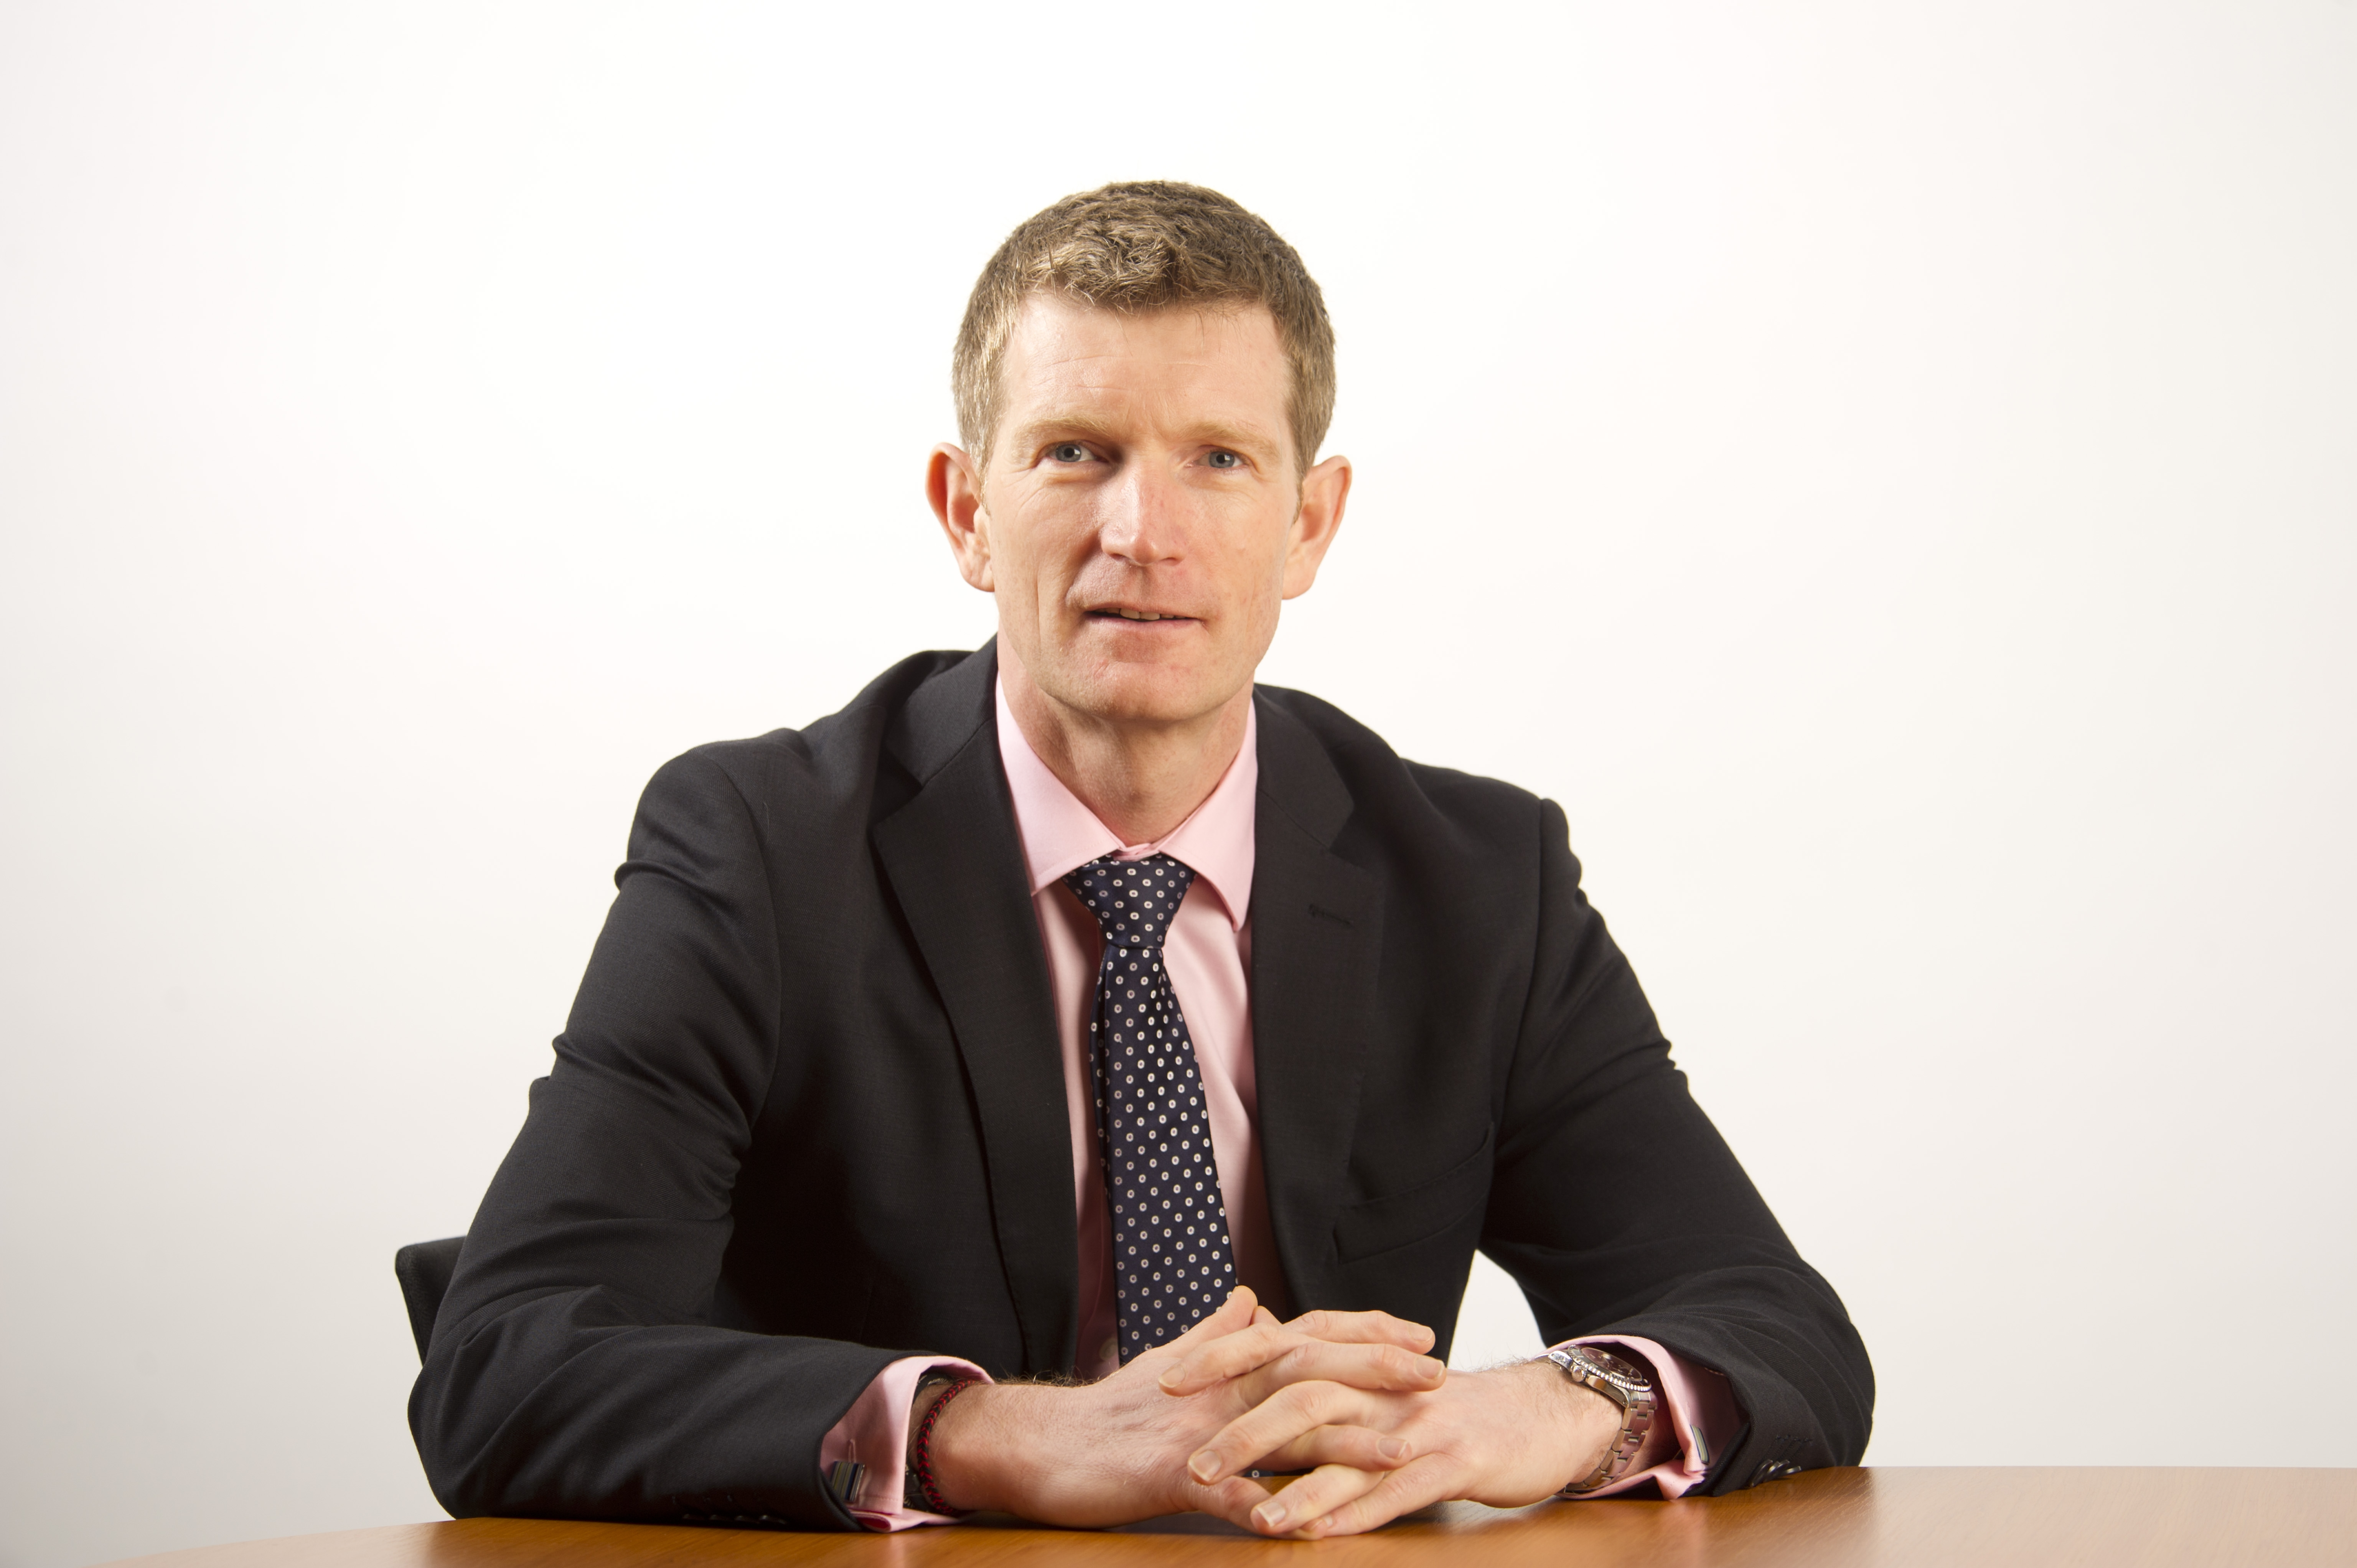 Mr Bulmer will maintain his role at the Co-op Group